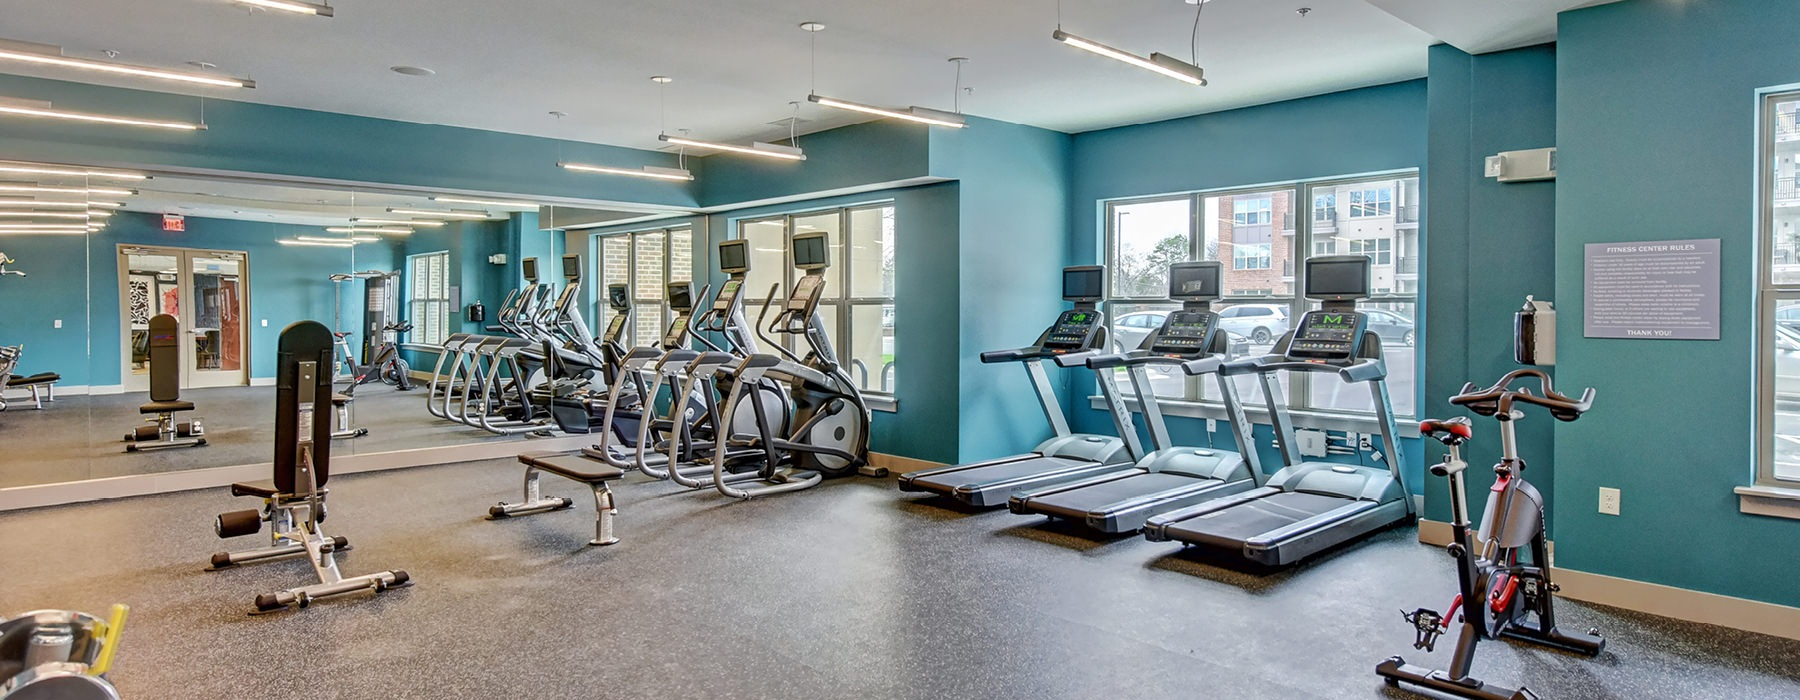 Fitness Center with light blue walls and a variety of equipment